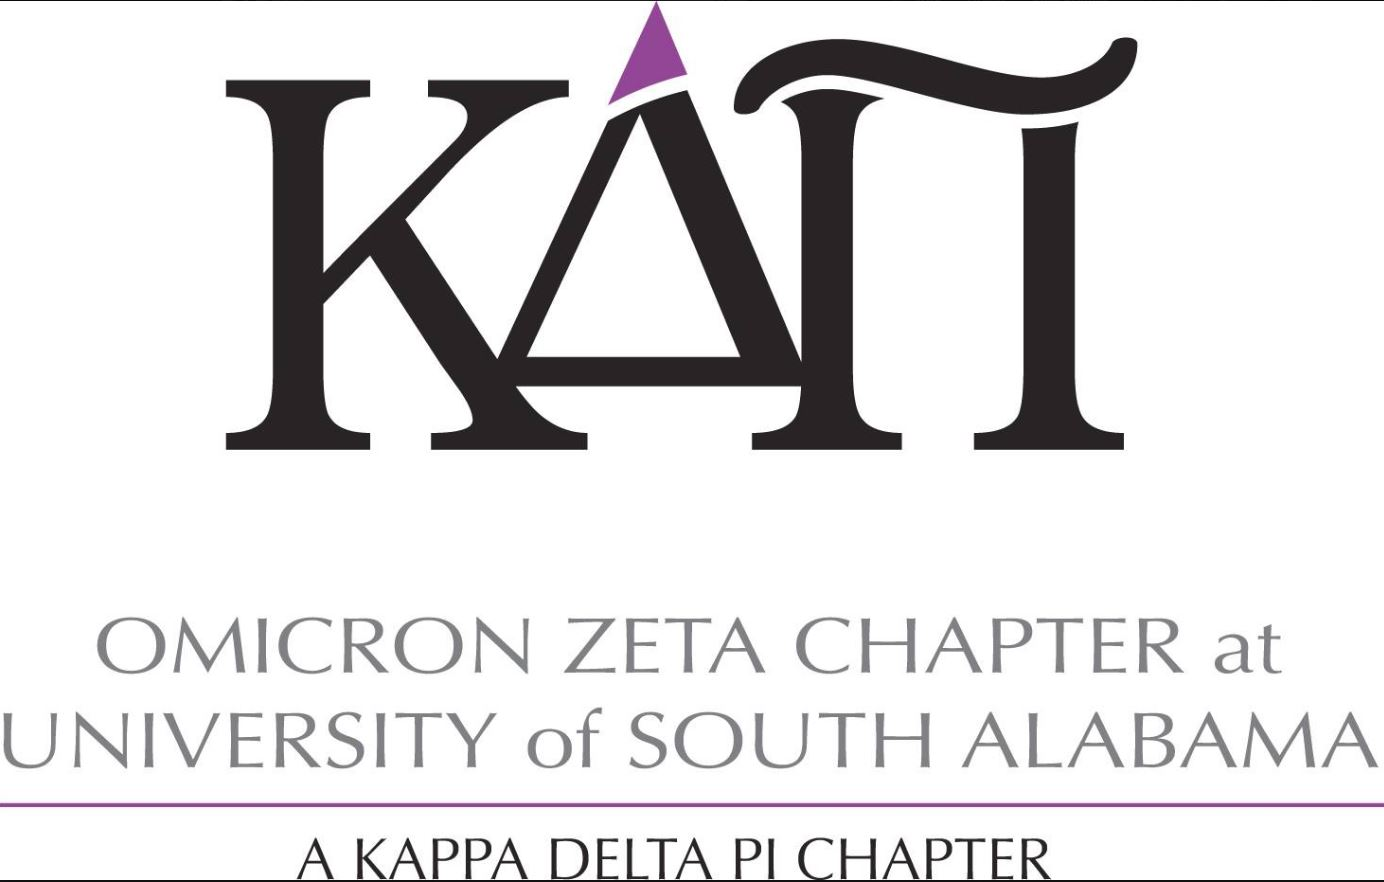 Omicron Zeta chapter of Kappa Delta Pi sponsors a T-Shirt Fundraiser in memory of Dr. Nancy Gaillard and to benefit Nancy Gaillard Love of Teaching Scholarship at the College of Education and Instructional Studies.